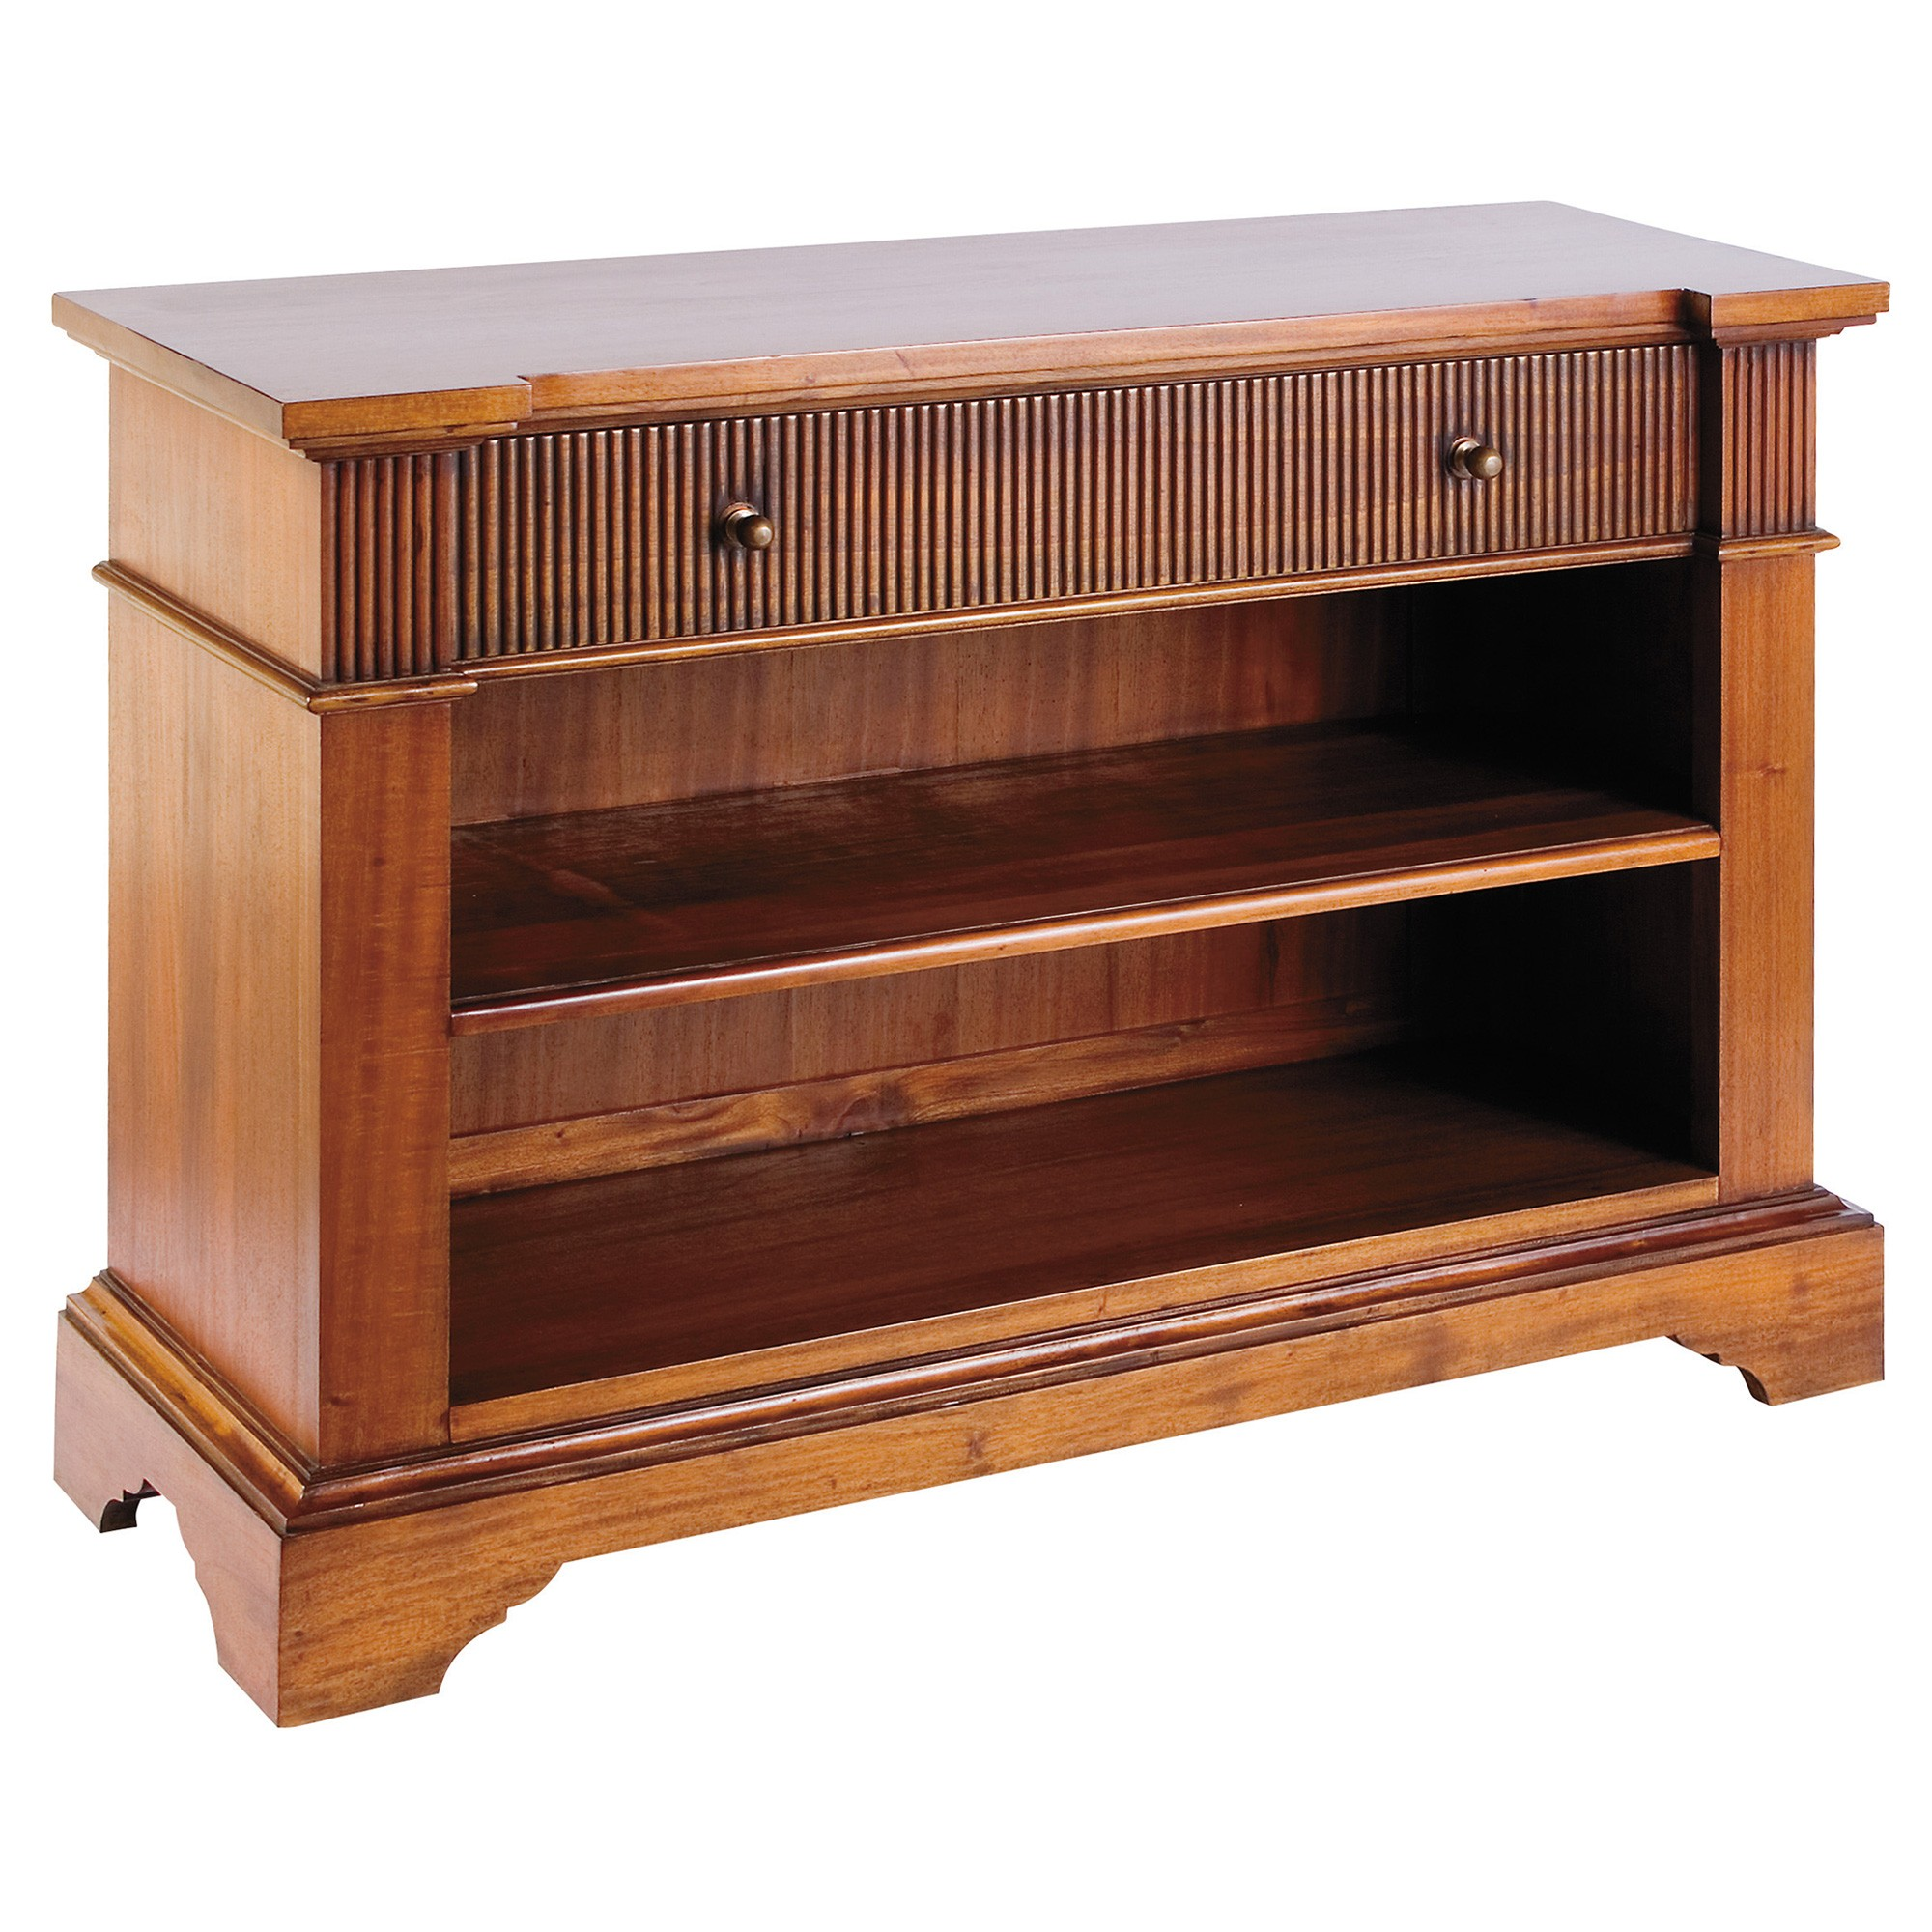 Hampton Mahogany Timber High TV Stand / Low Bookcase, 100cm, Light Walnut